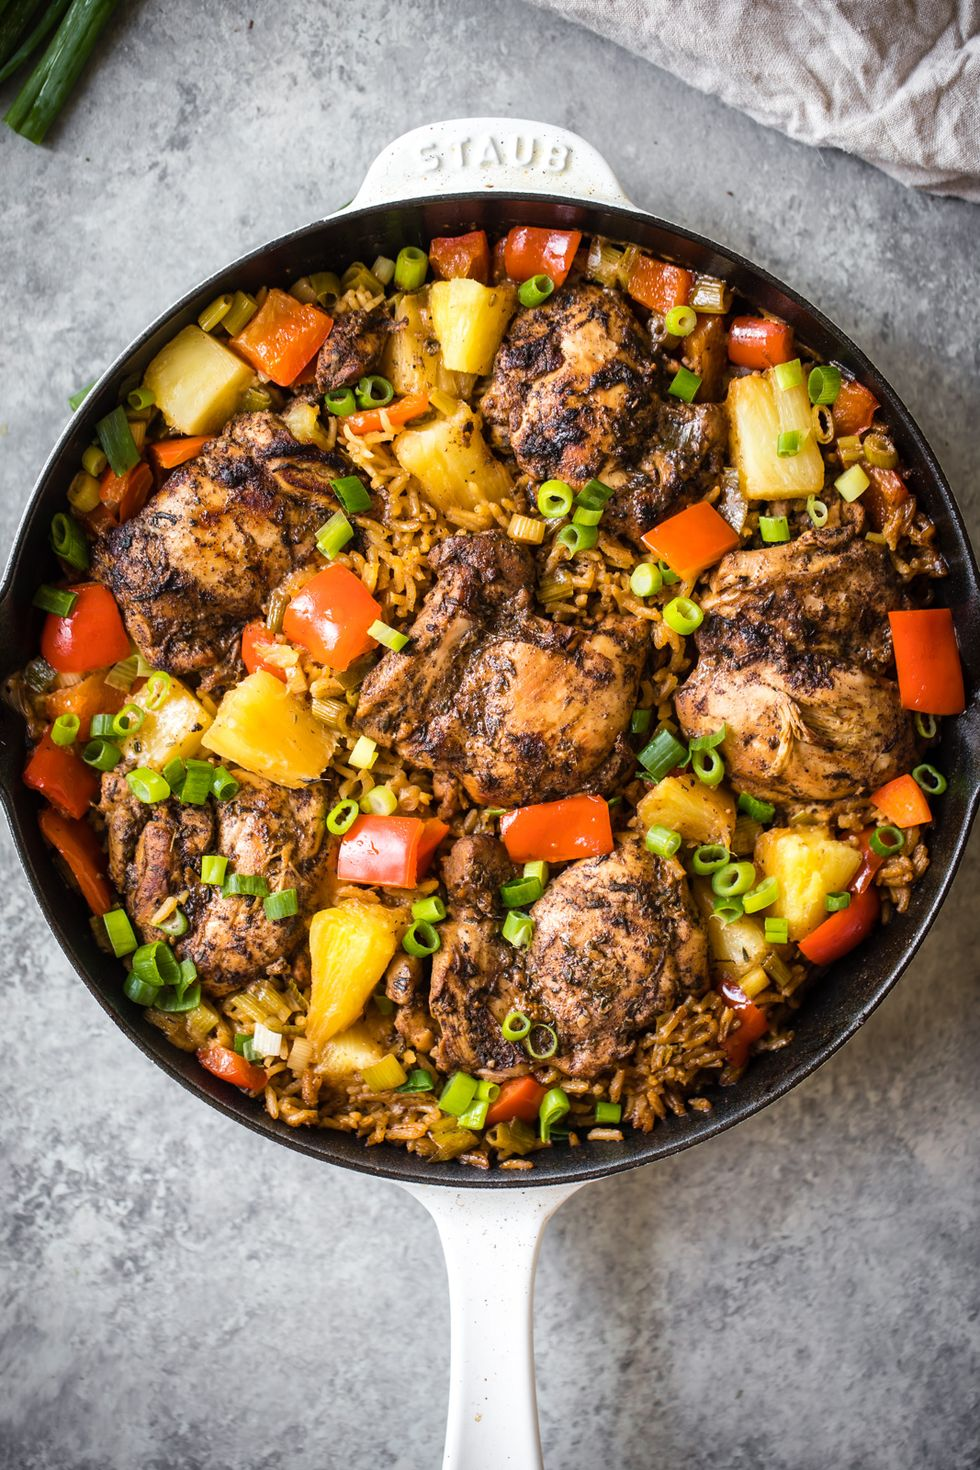 25 Easy Healthy Dinner Recipes -  Caribbean Jerk Chicken with Pineapple-Coconut Rice